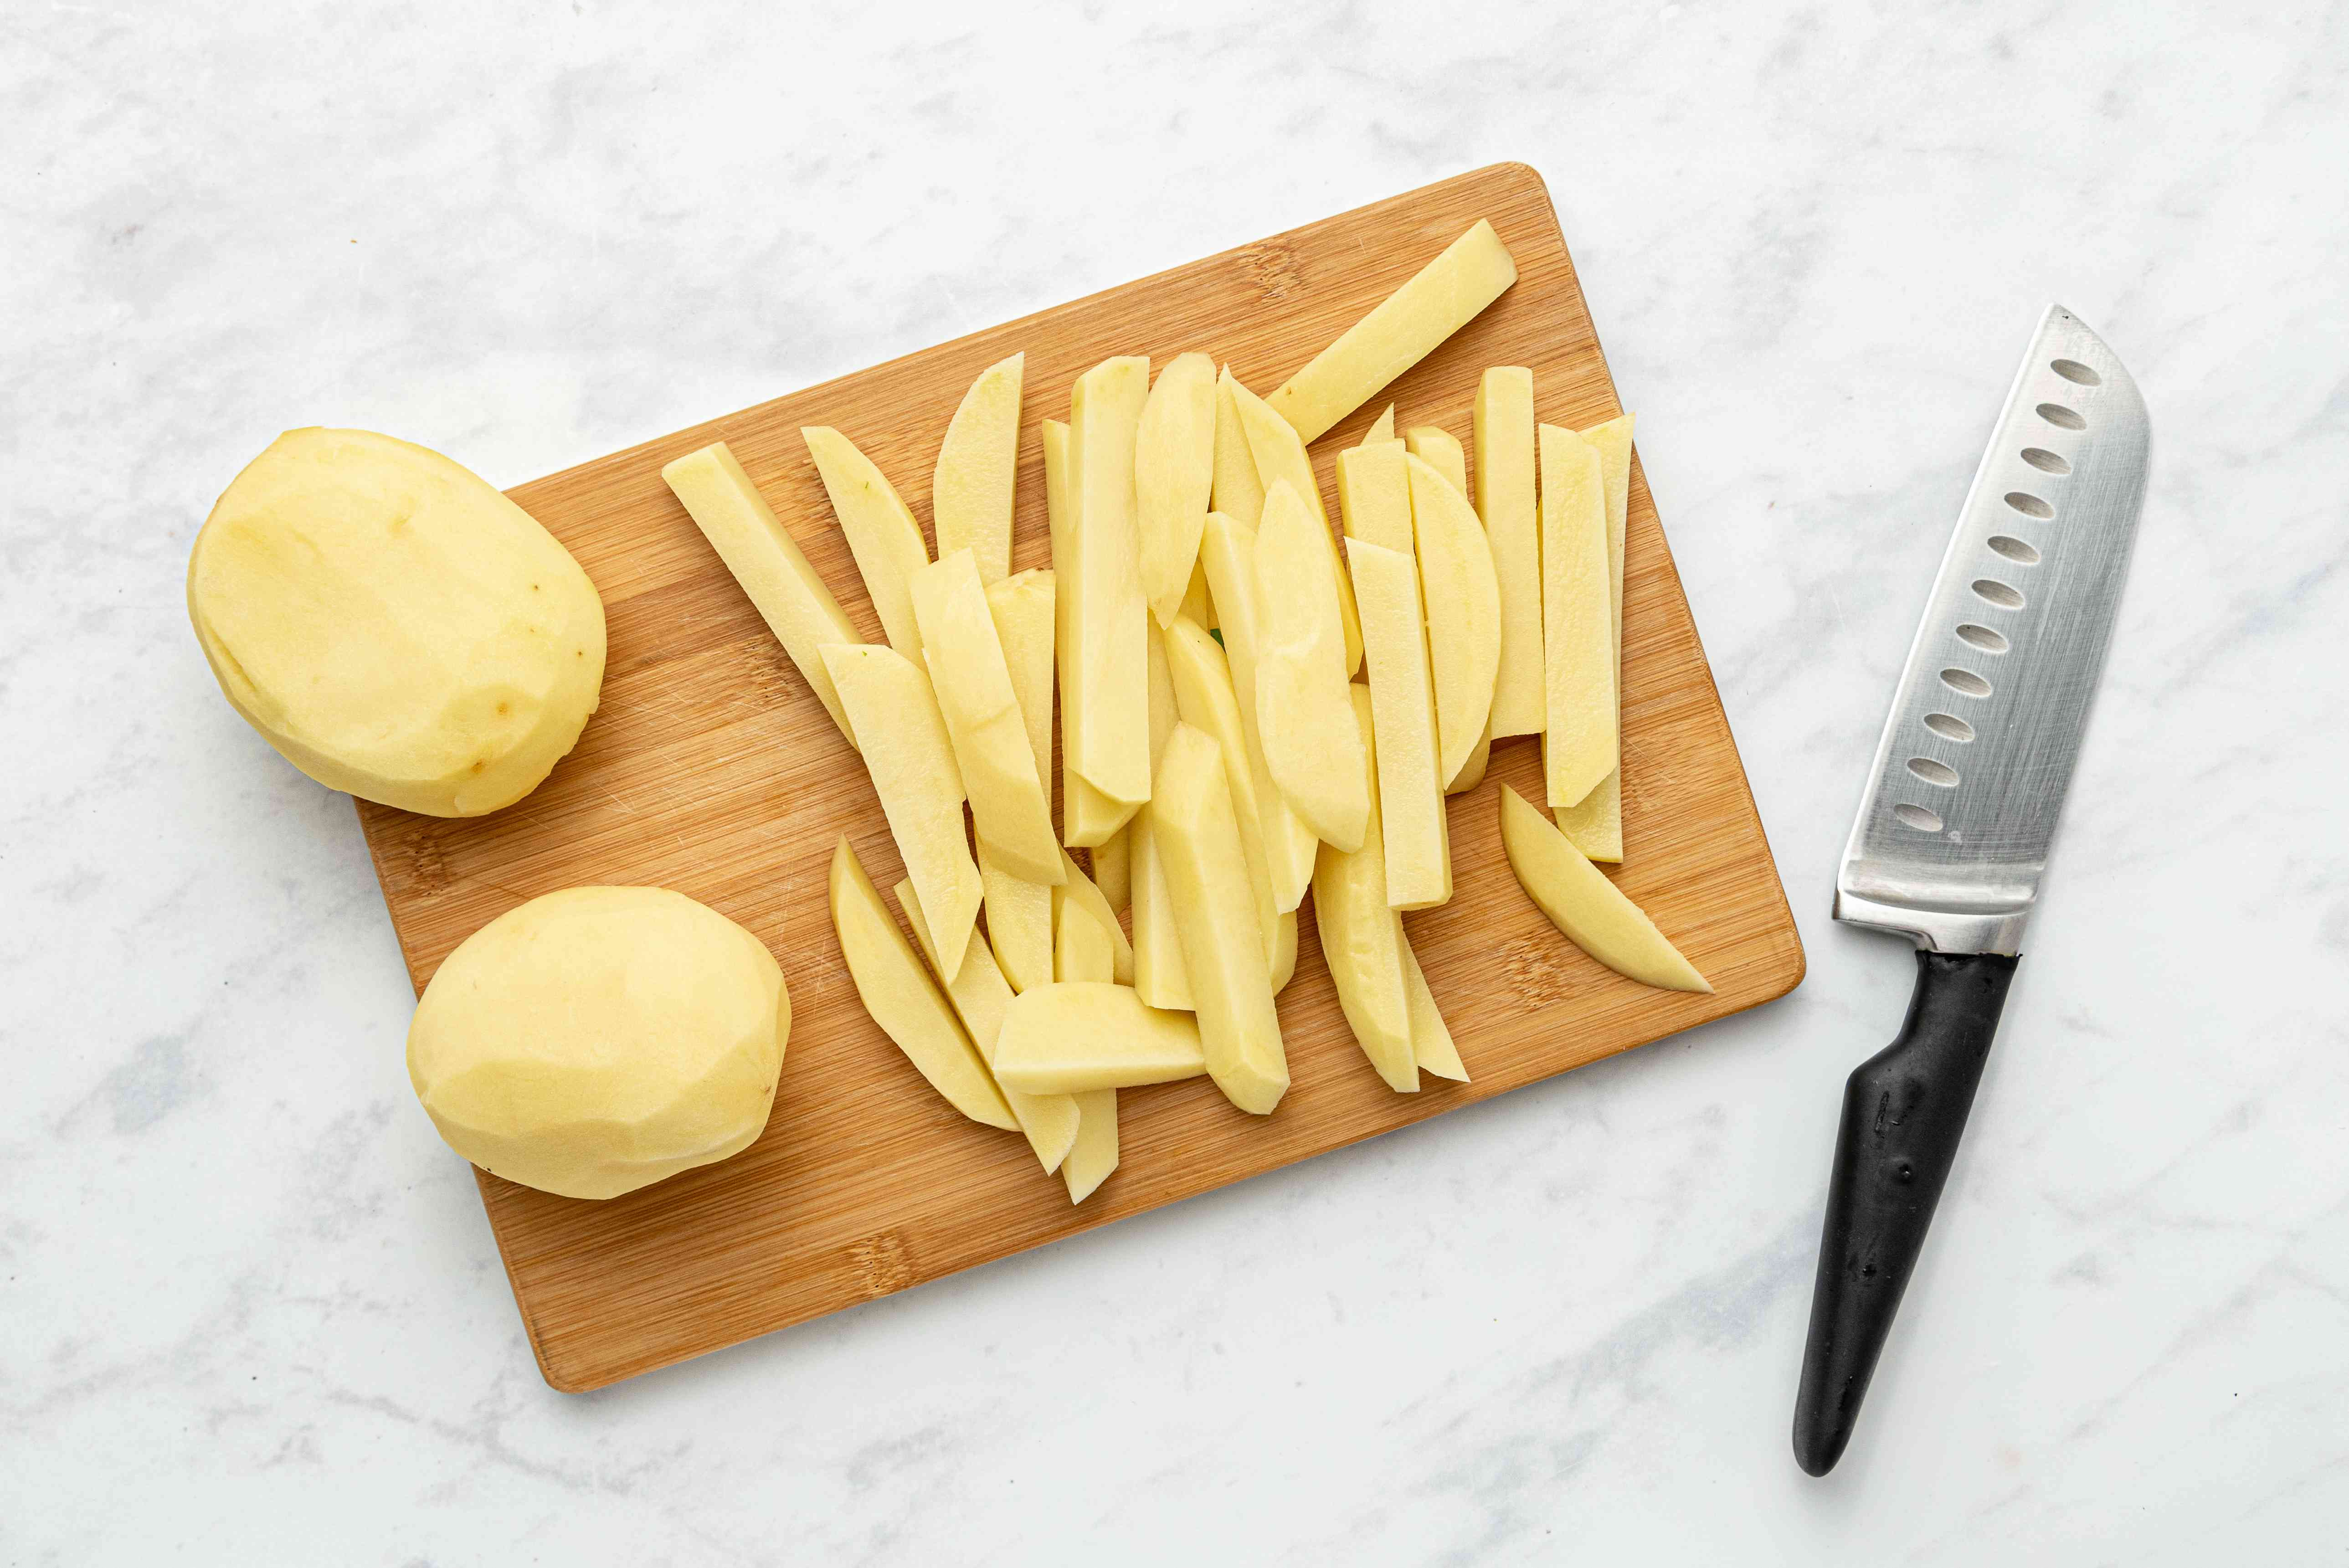 peeled potatoes cut into fries on a cutting board